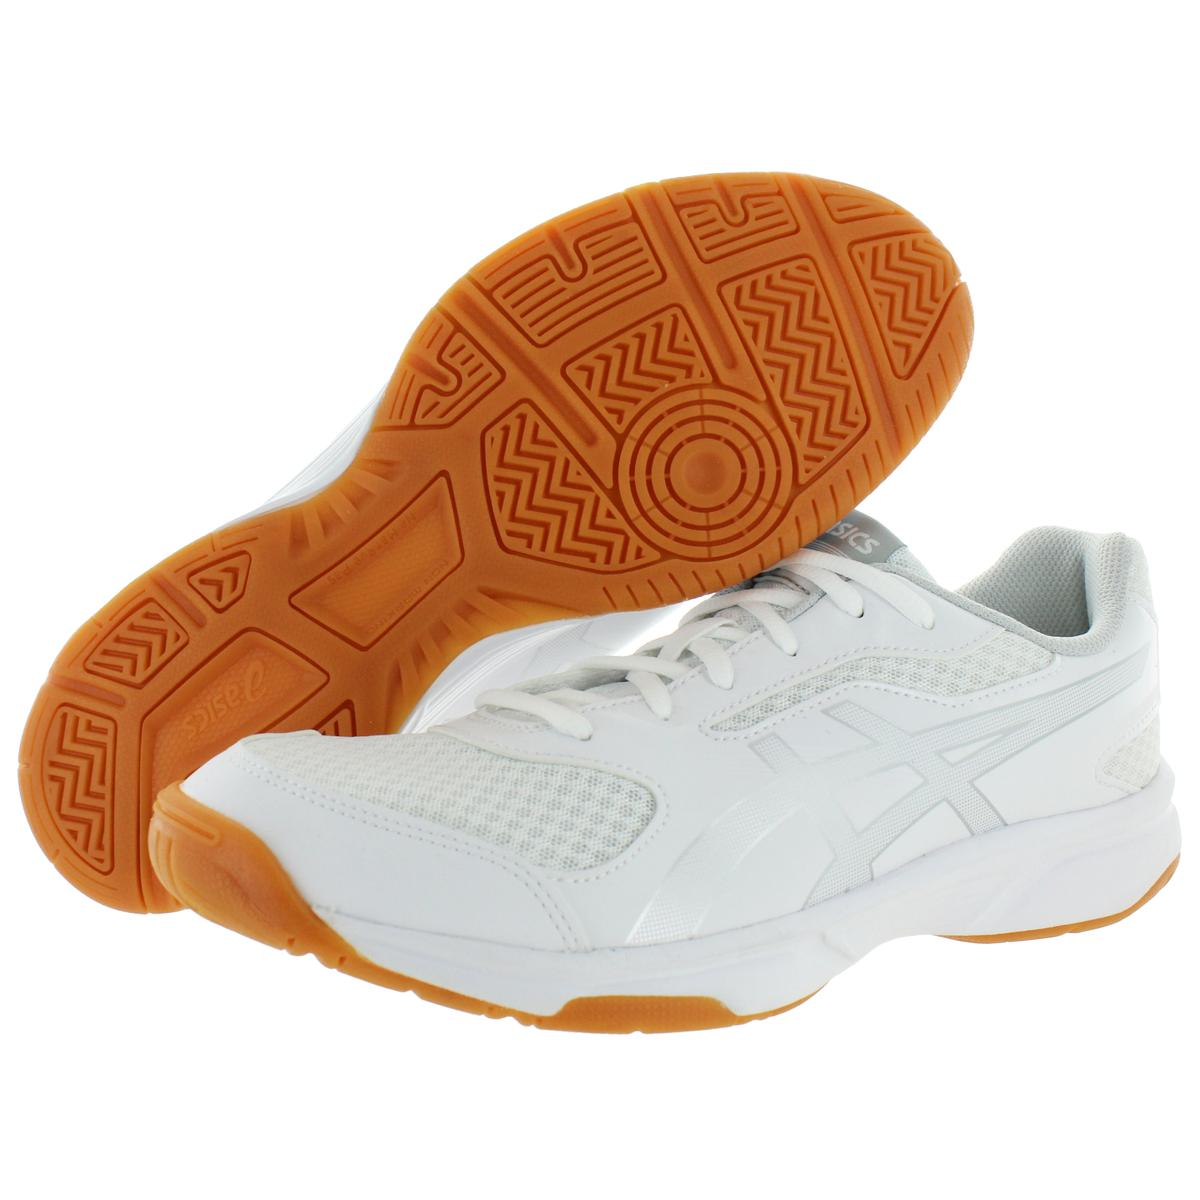 Asics-Womens-Upcourt-2-Low-Top-Trainers-Volleyball-Shoes-Sneakers-BHFO-5028 thumbnail 8